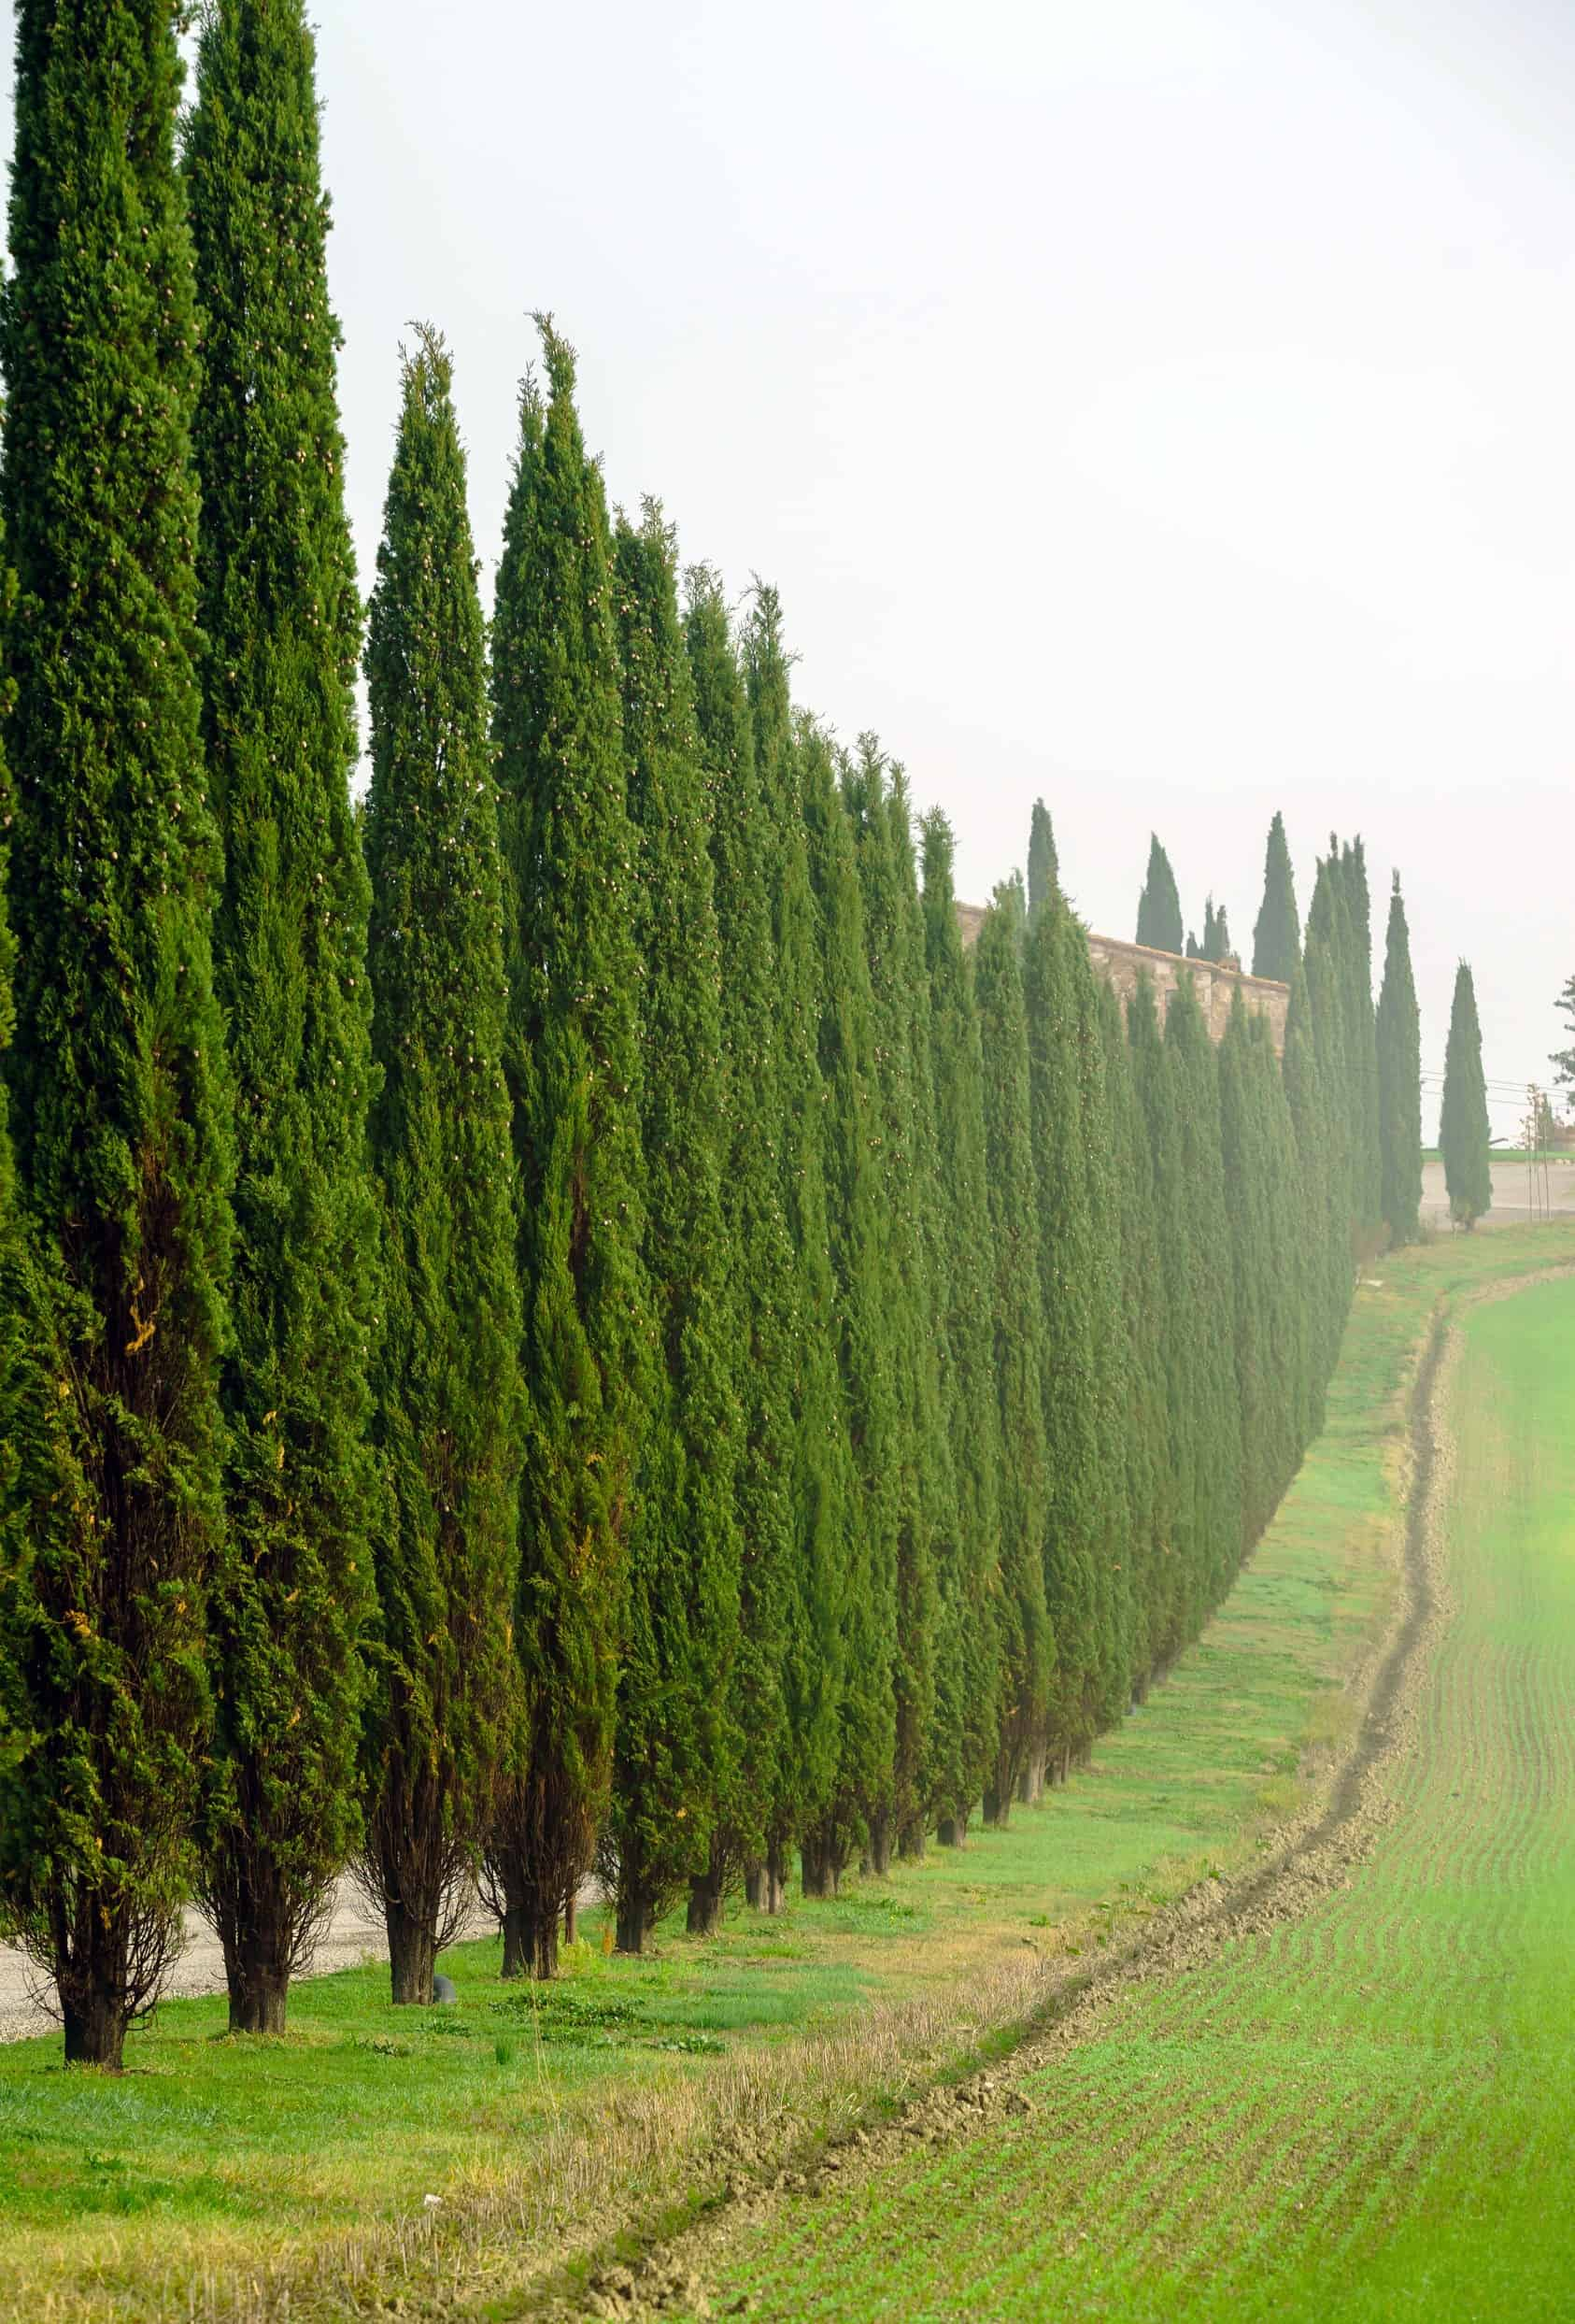 the Italian cypress has a perfectly-shaped column that is ideal for a border